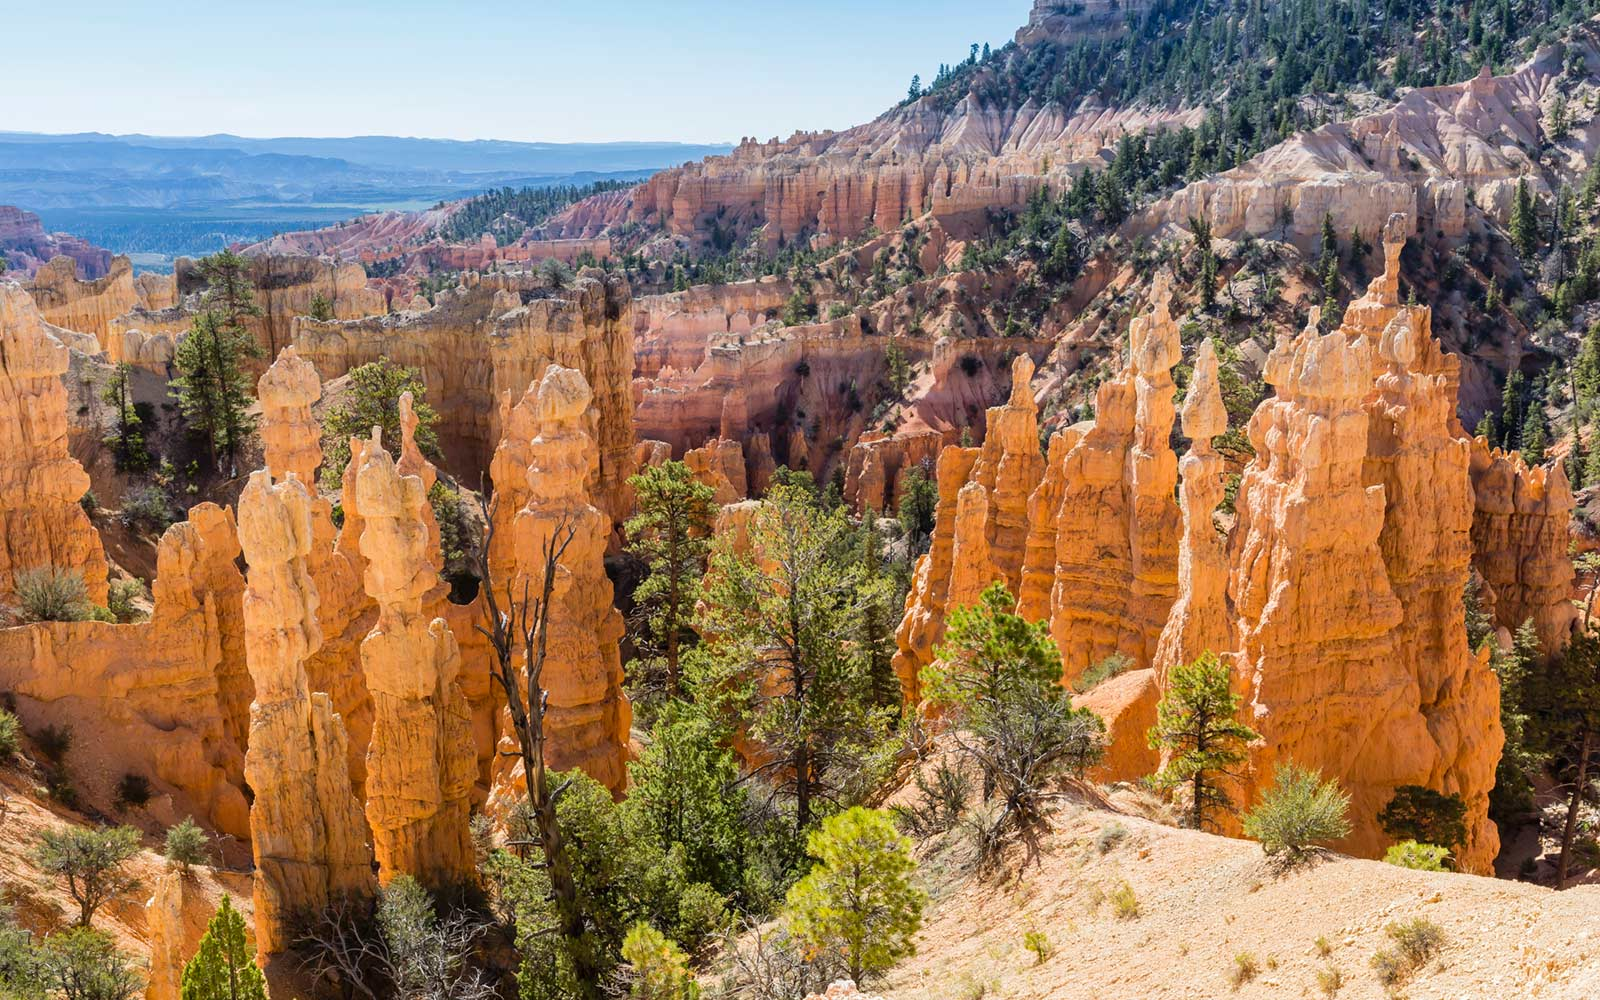 What to Do at Bryce Canyon National Park